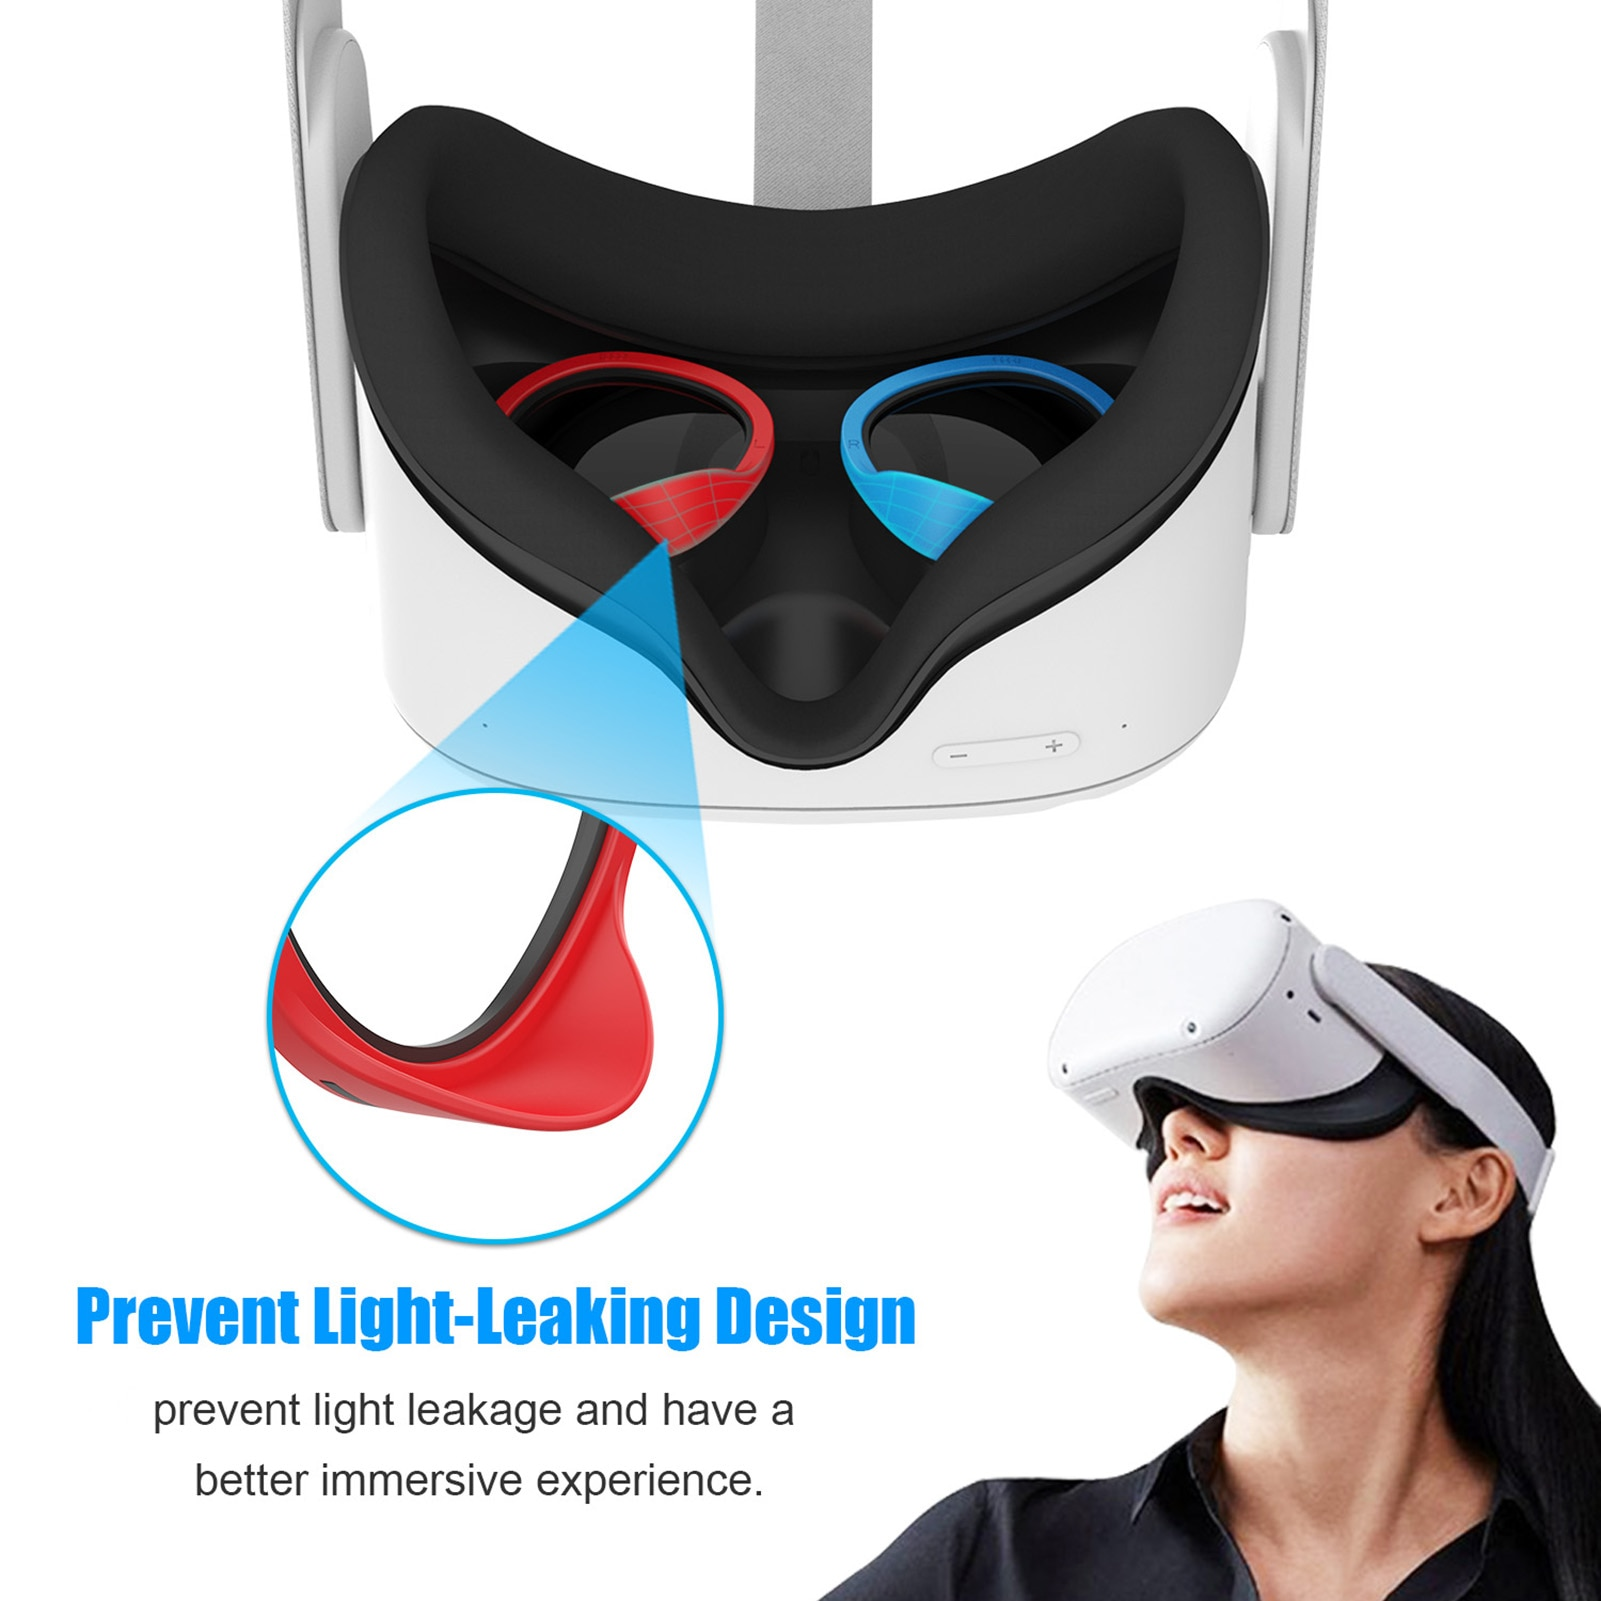 VR Frame Set Protective Case Cover Lens Ring Kit For Oculus Quest 1/2 For Oculus Rift S Video Game Consoles Games Accessories enlarge